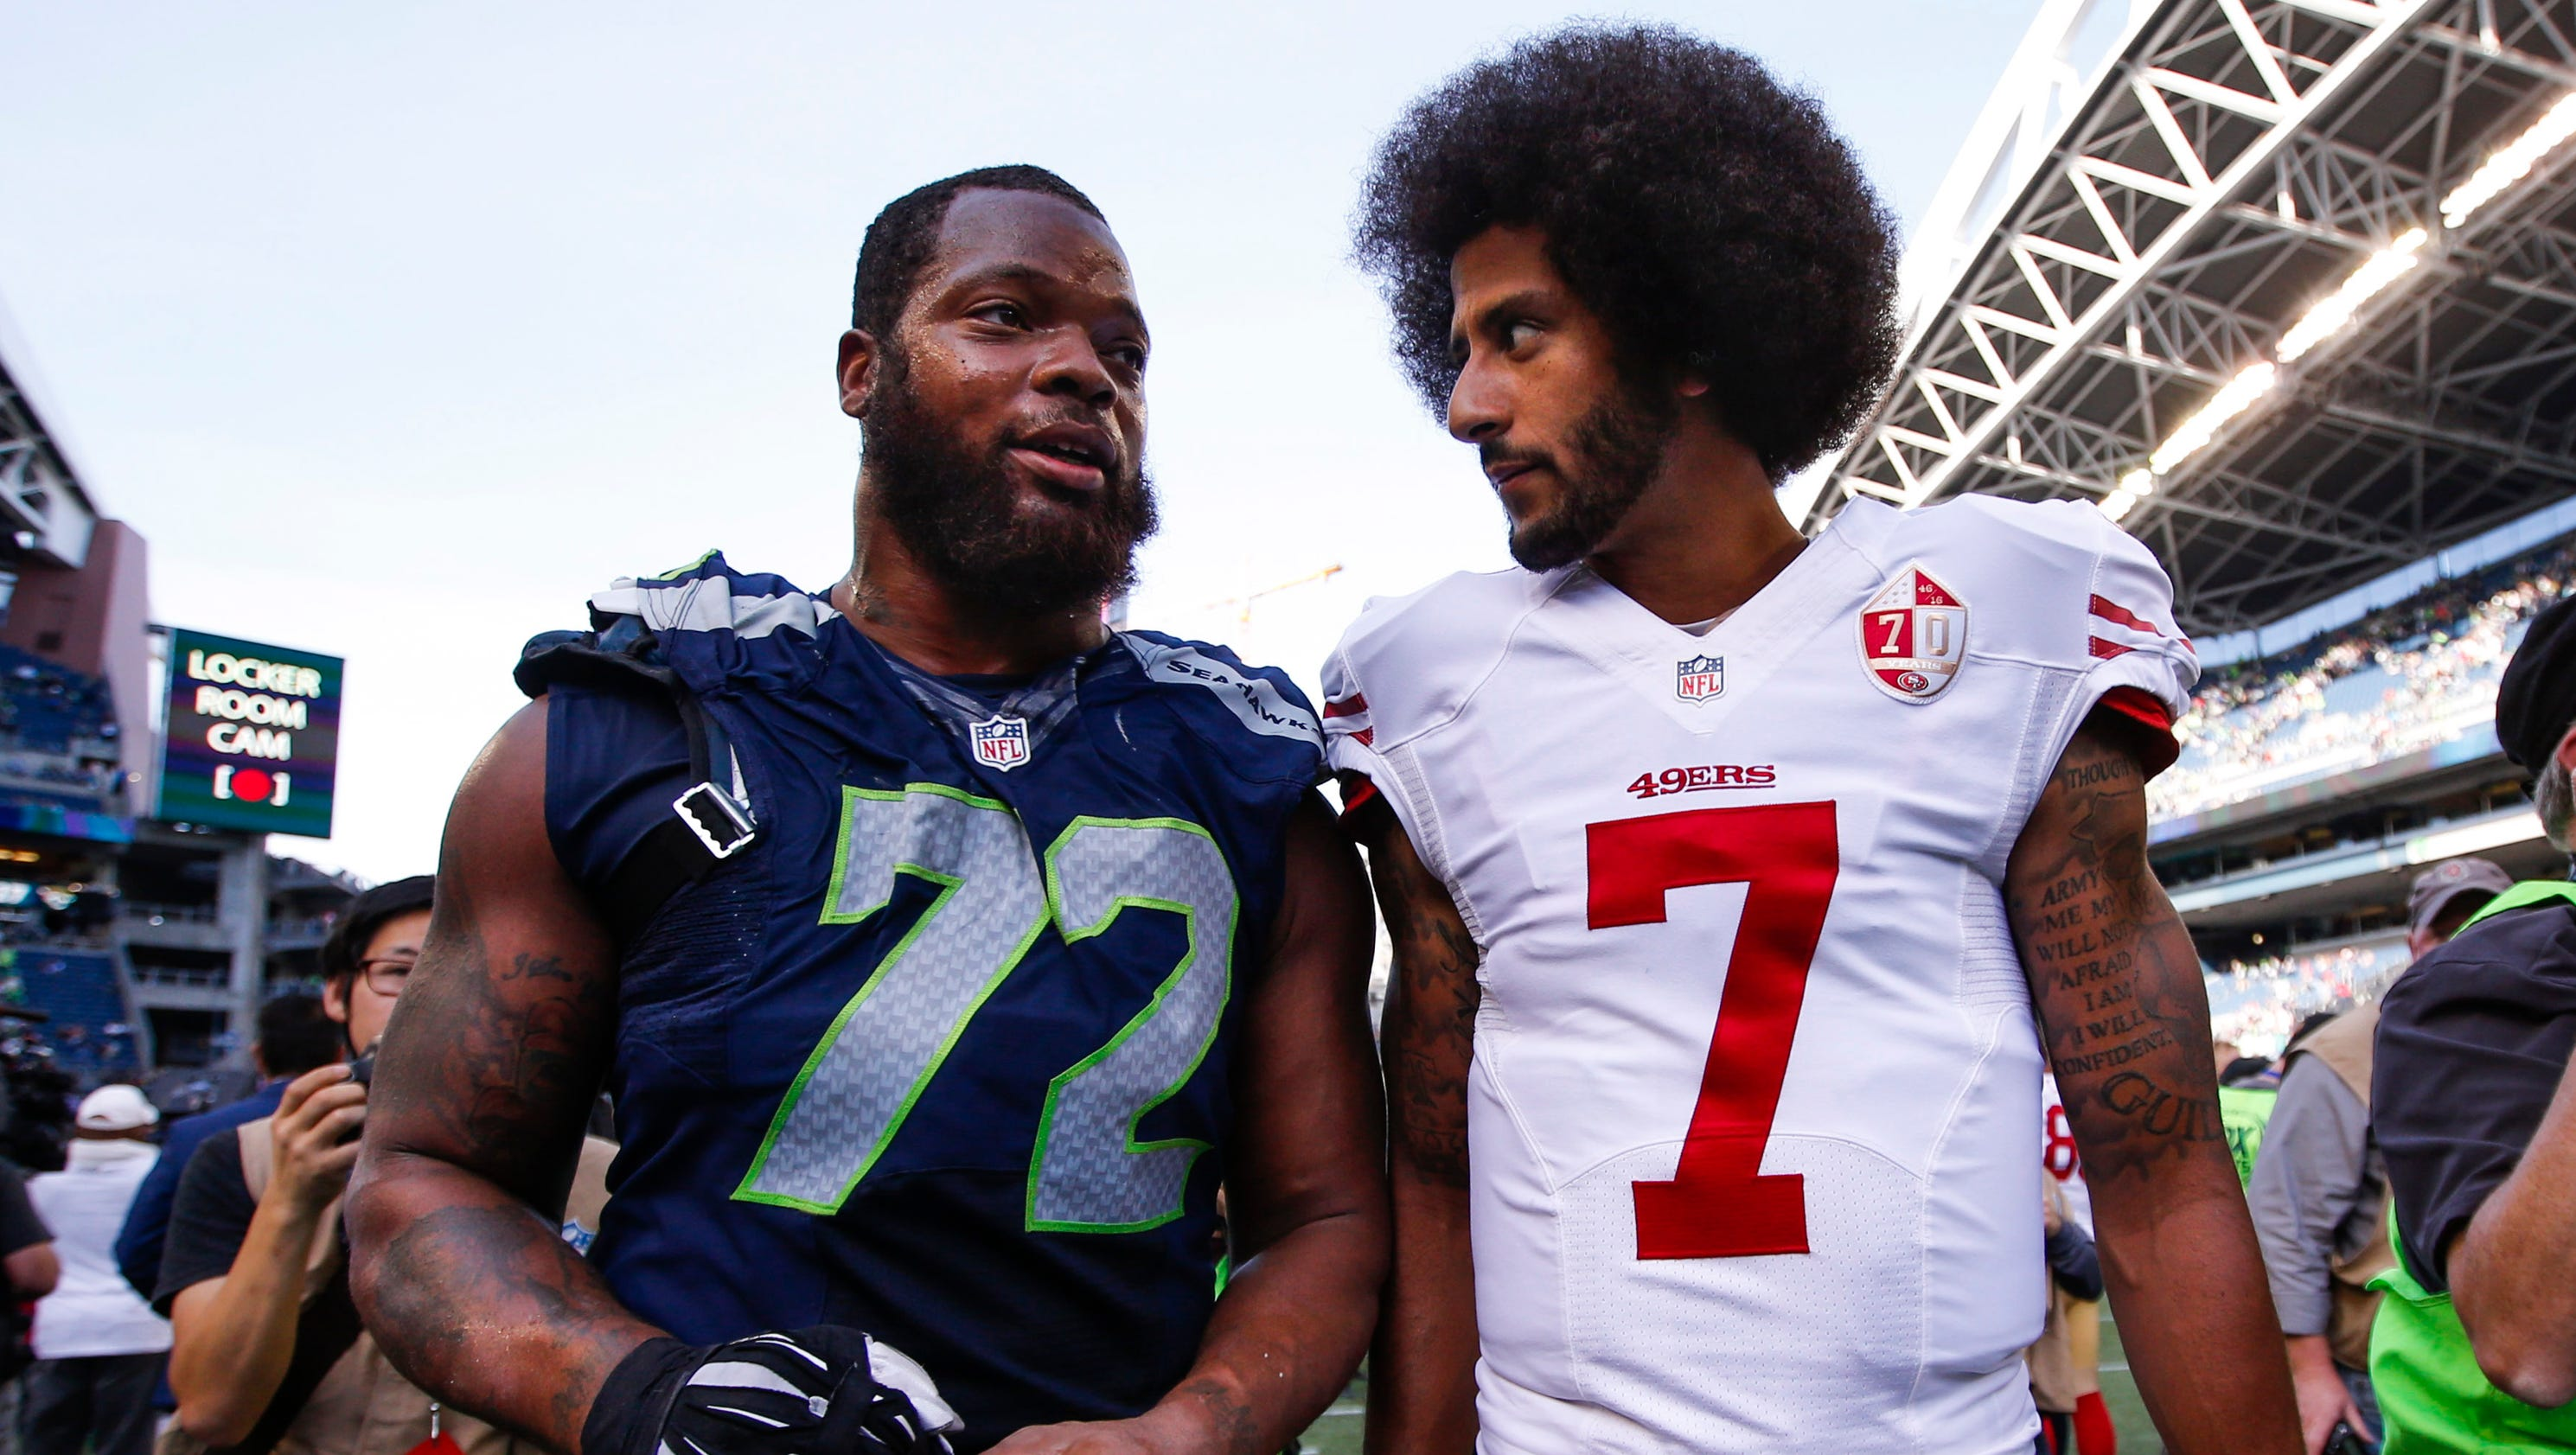 636305554182216198-usp-nfl-san-francisco-49ers-at-seattle-seahawks-85509144